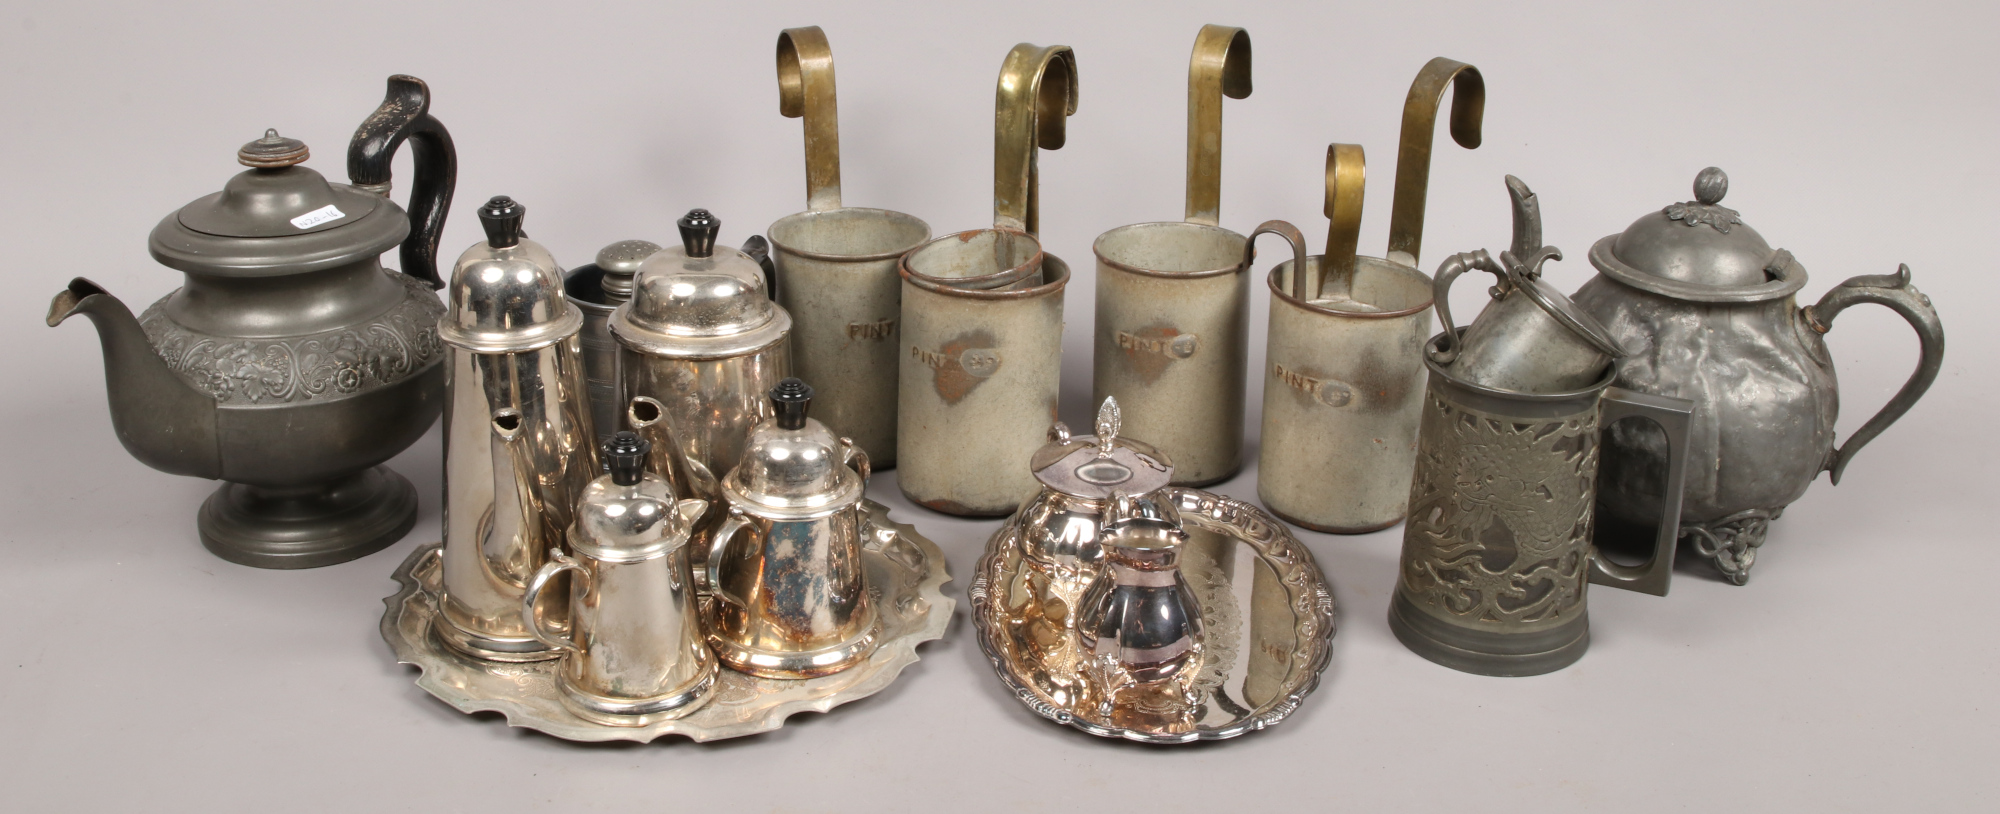 Lot 3 - A collection of metalwares to include Swatow pierced tankard, silver plate tea set, pewter and brass